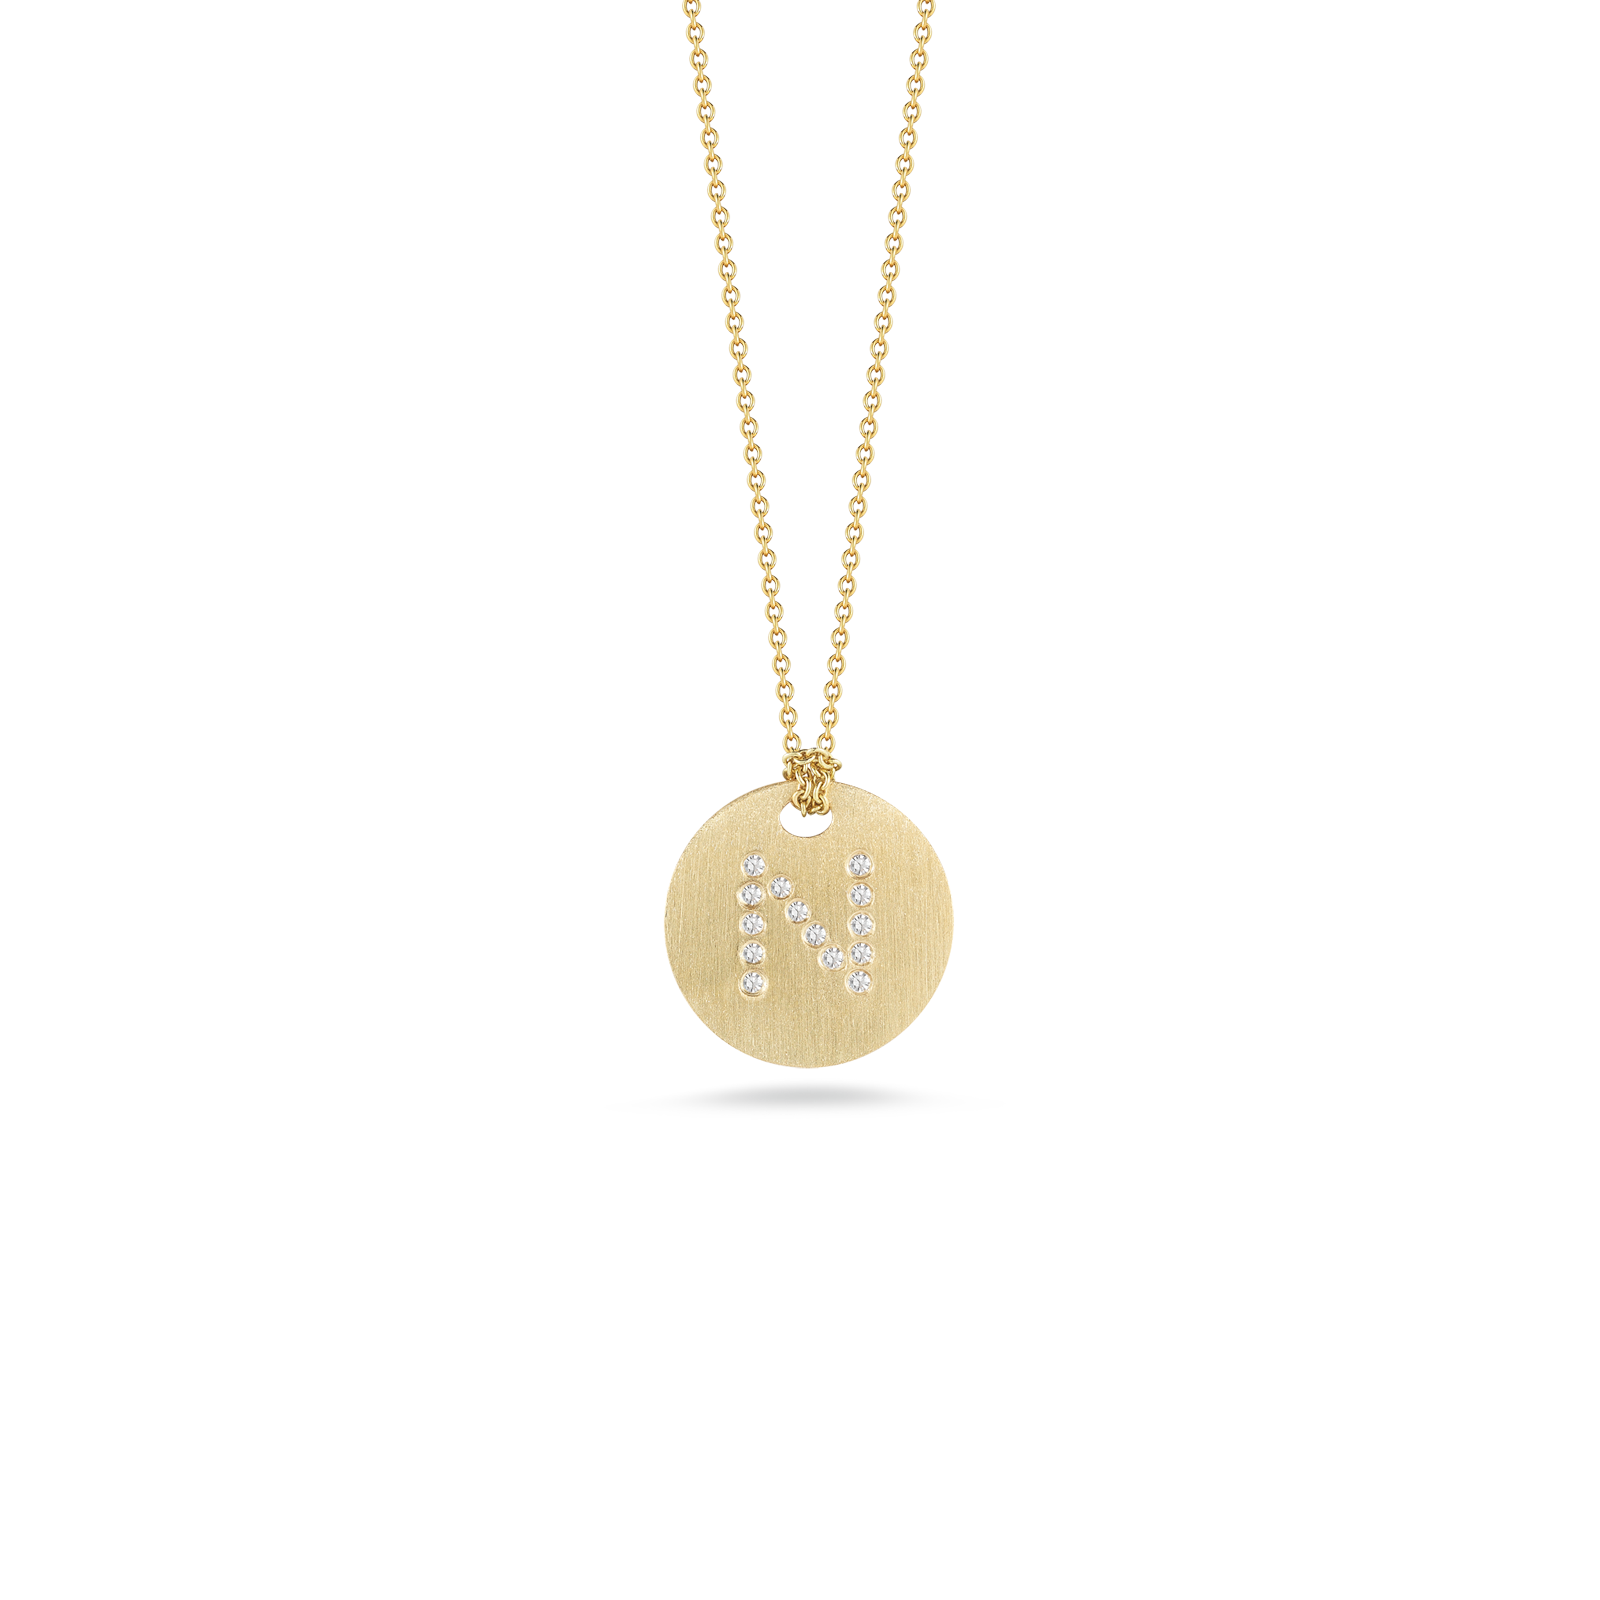 Tiny treasures gifts collection official roberto coin us website tiny treasuresdisc pendant with diamond initial n aloadofball Gallery